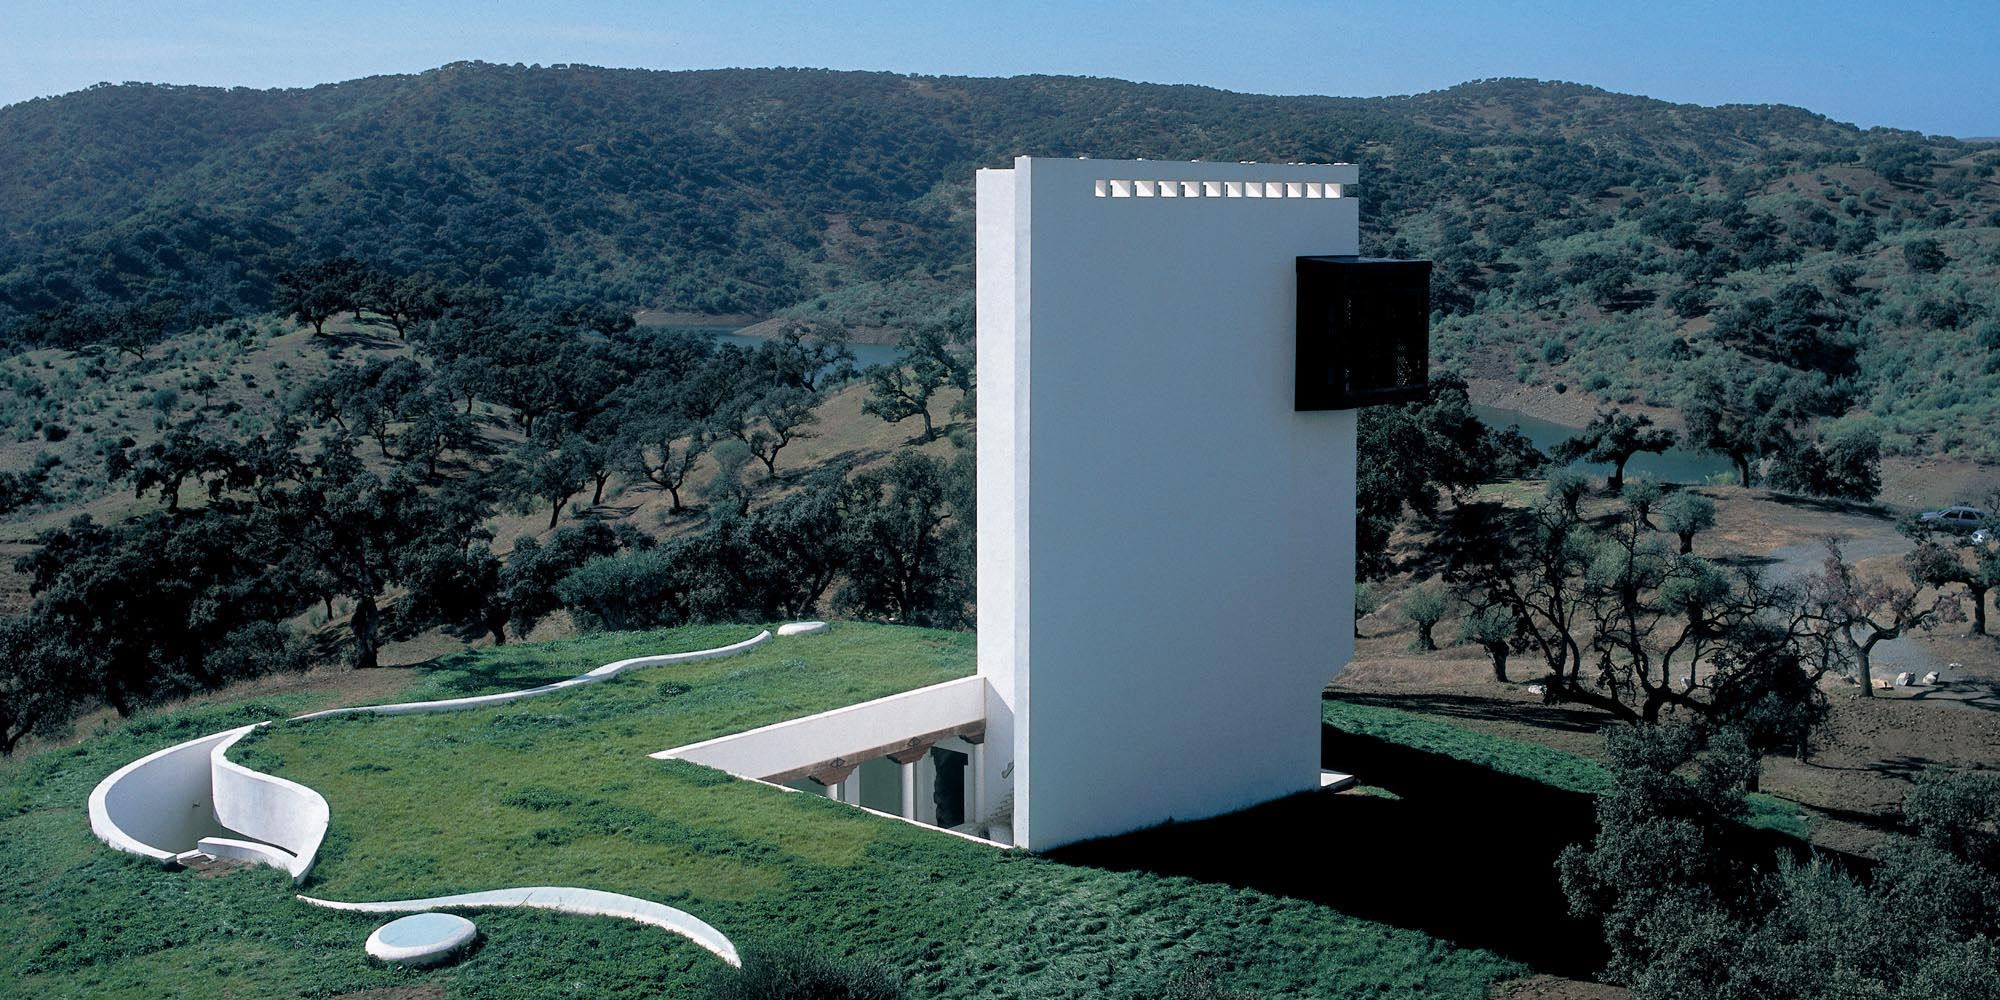 a square whitebuilding integrated into the surrounding landscape